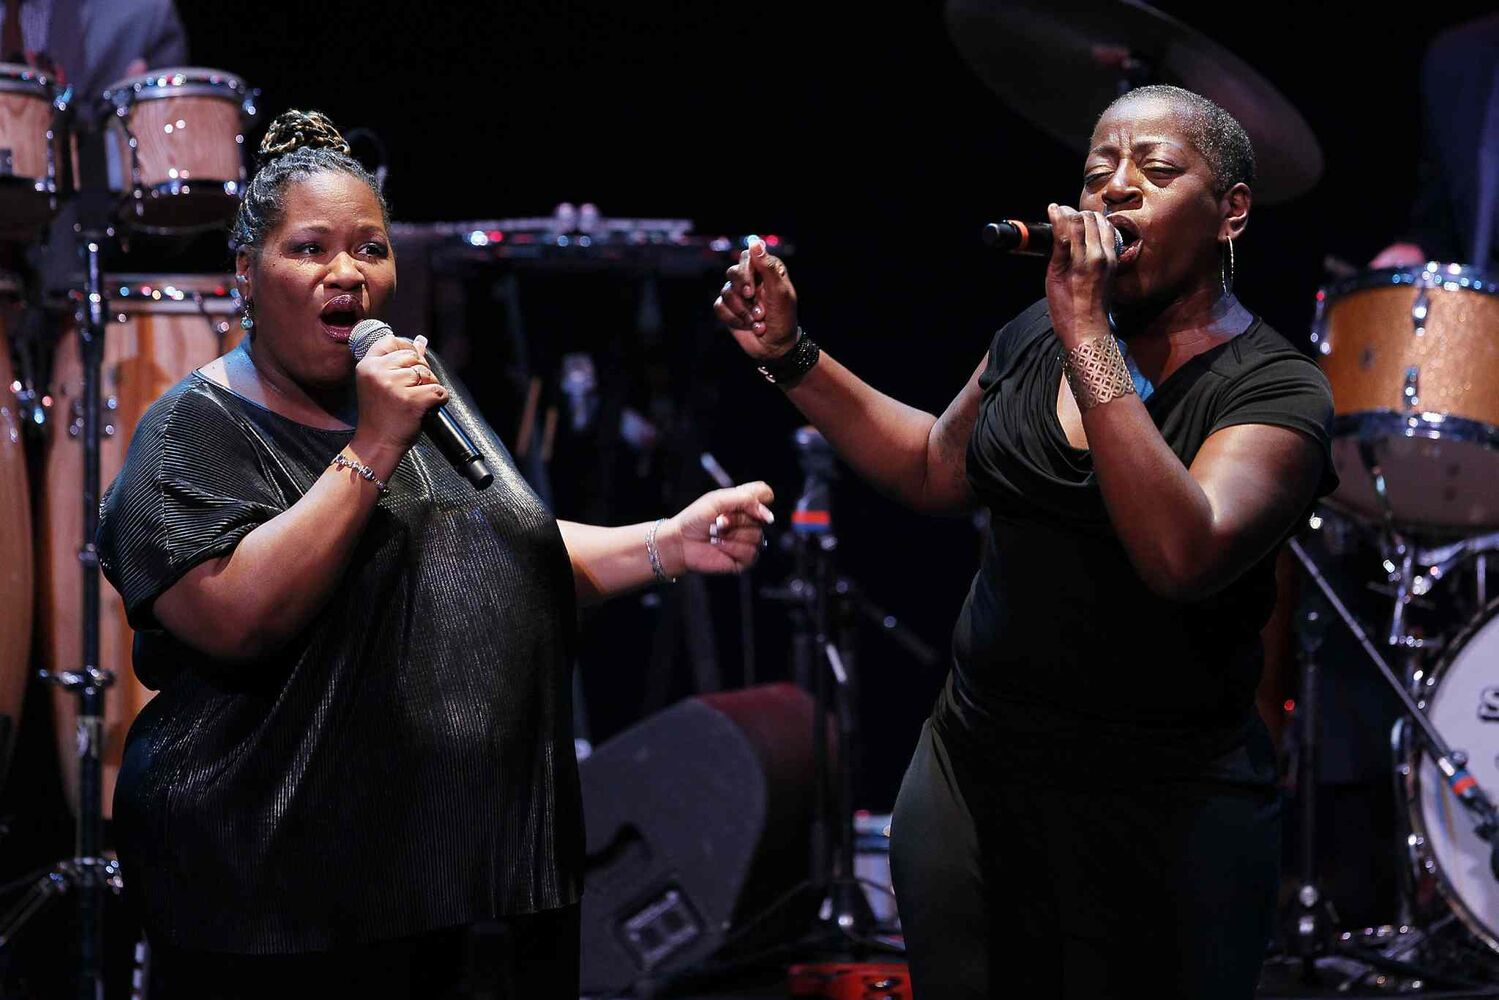 Saun & Starr (The Dapettes) open for Sharon Jones and The Dap-Kings at the Burton Cummings Theatre Tuesday. (John Woods / Winnipeg Free Press)